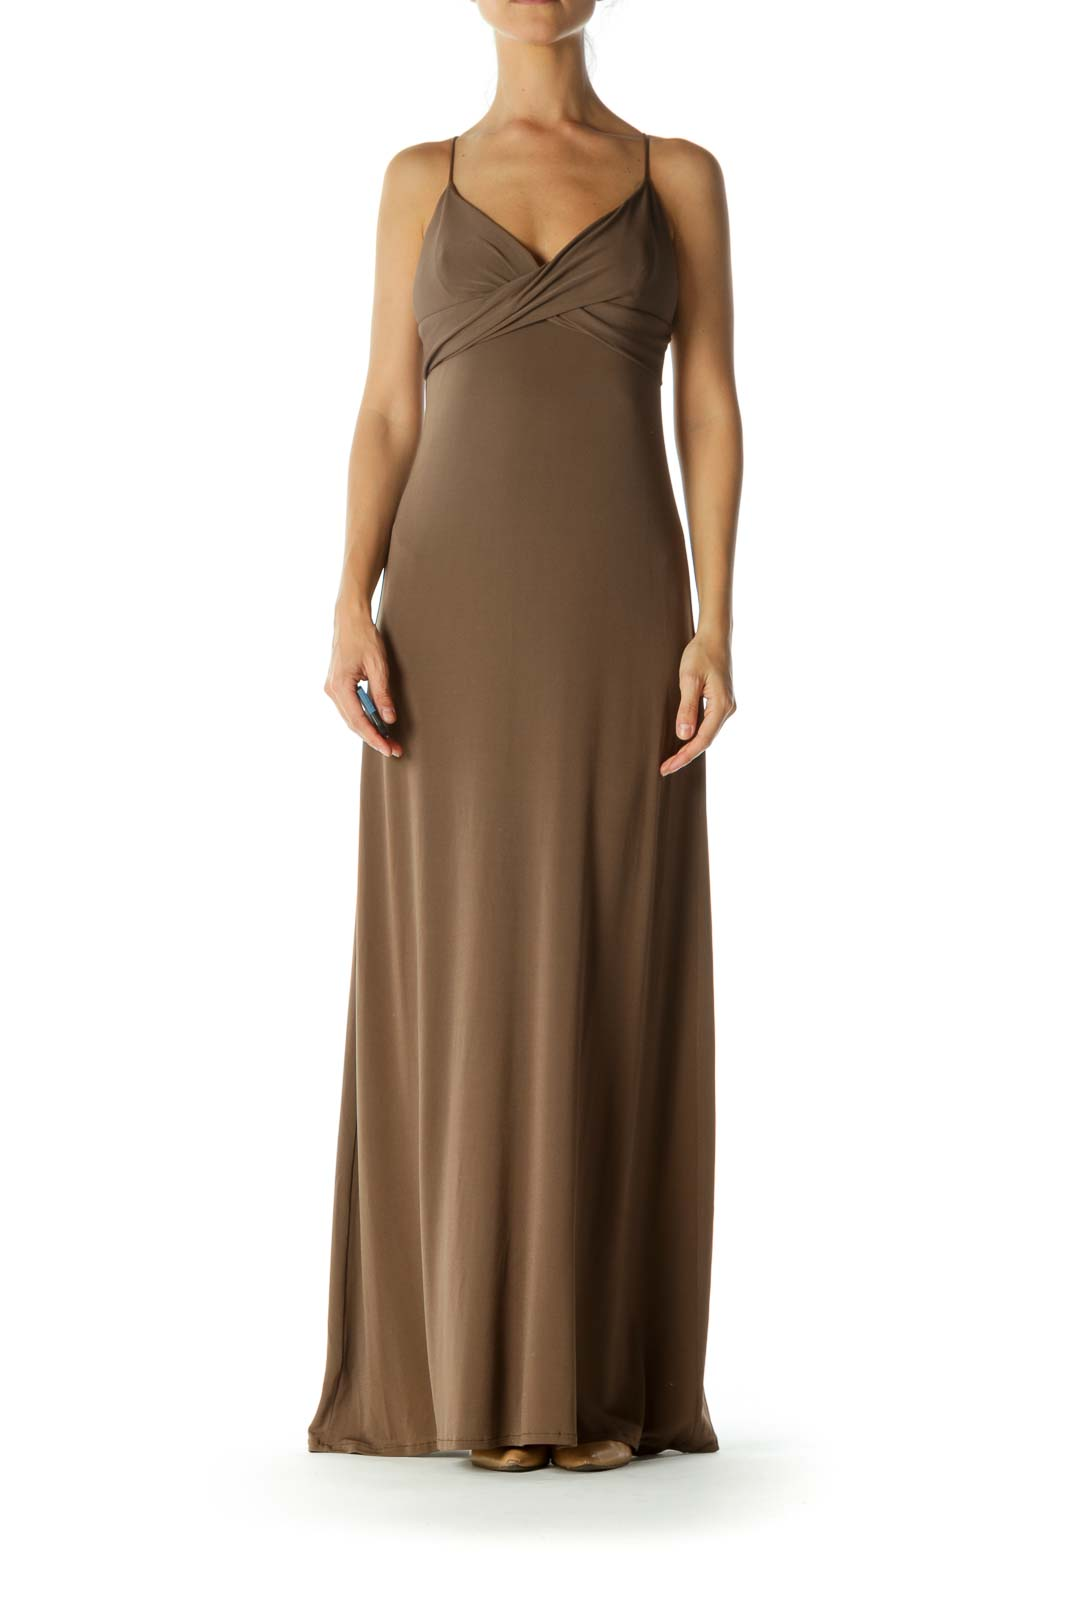 Brown Spaghetti Strap Maxi Dress